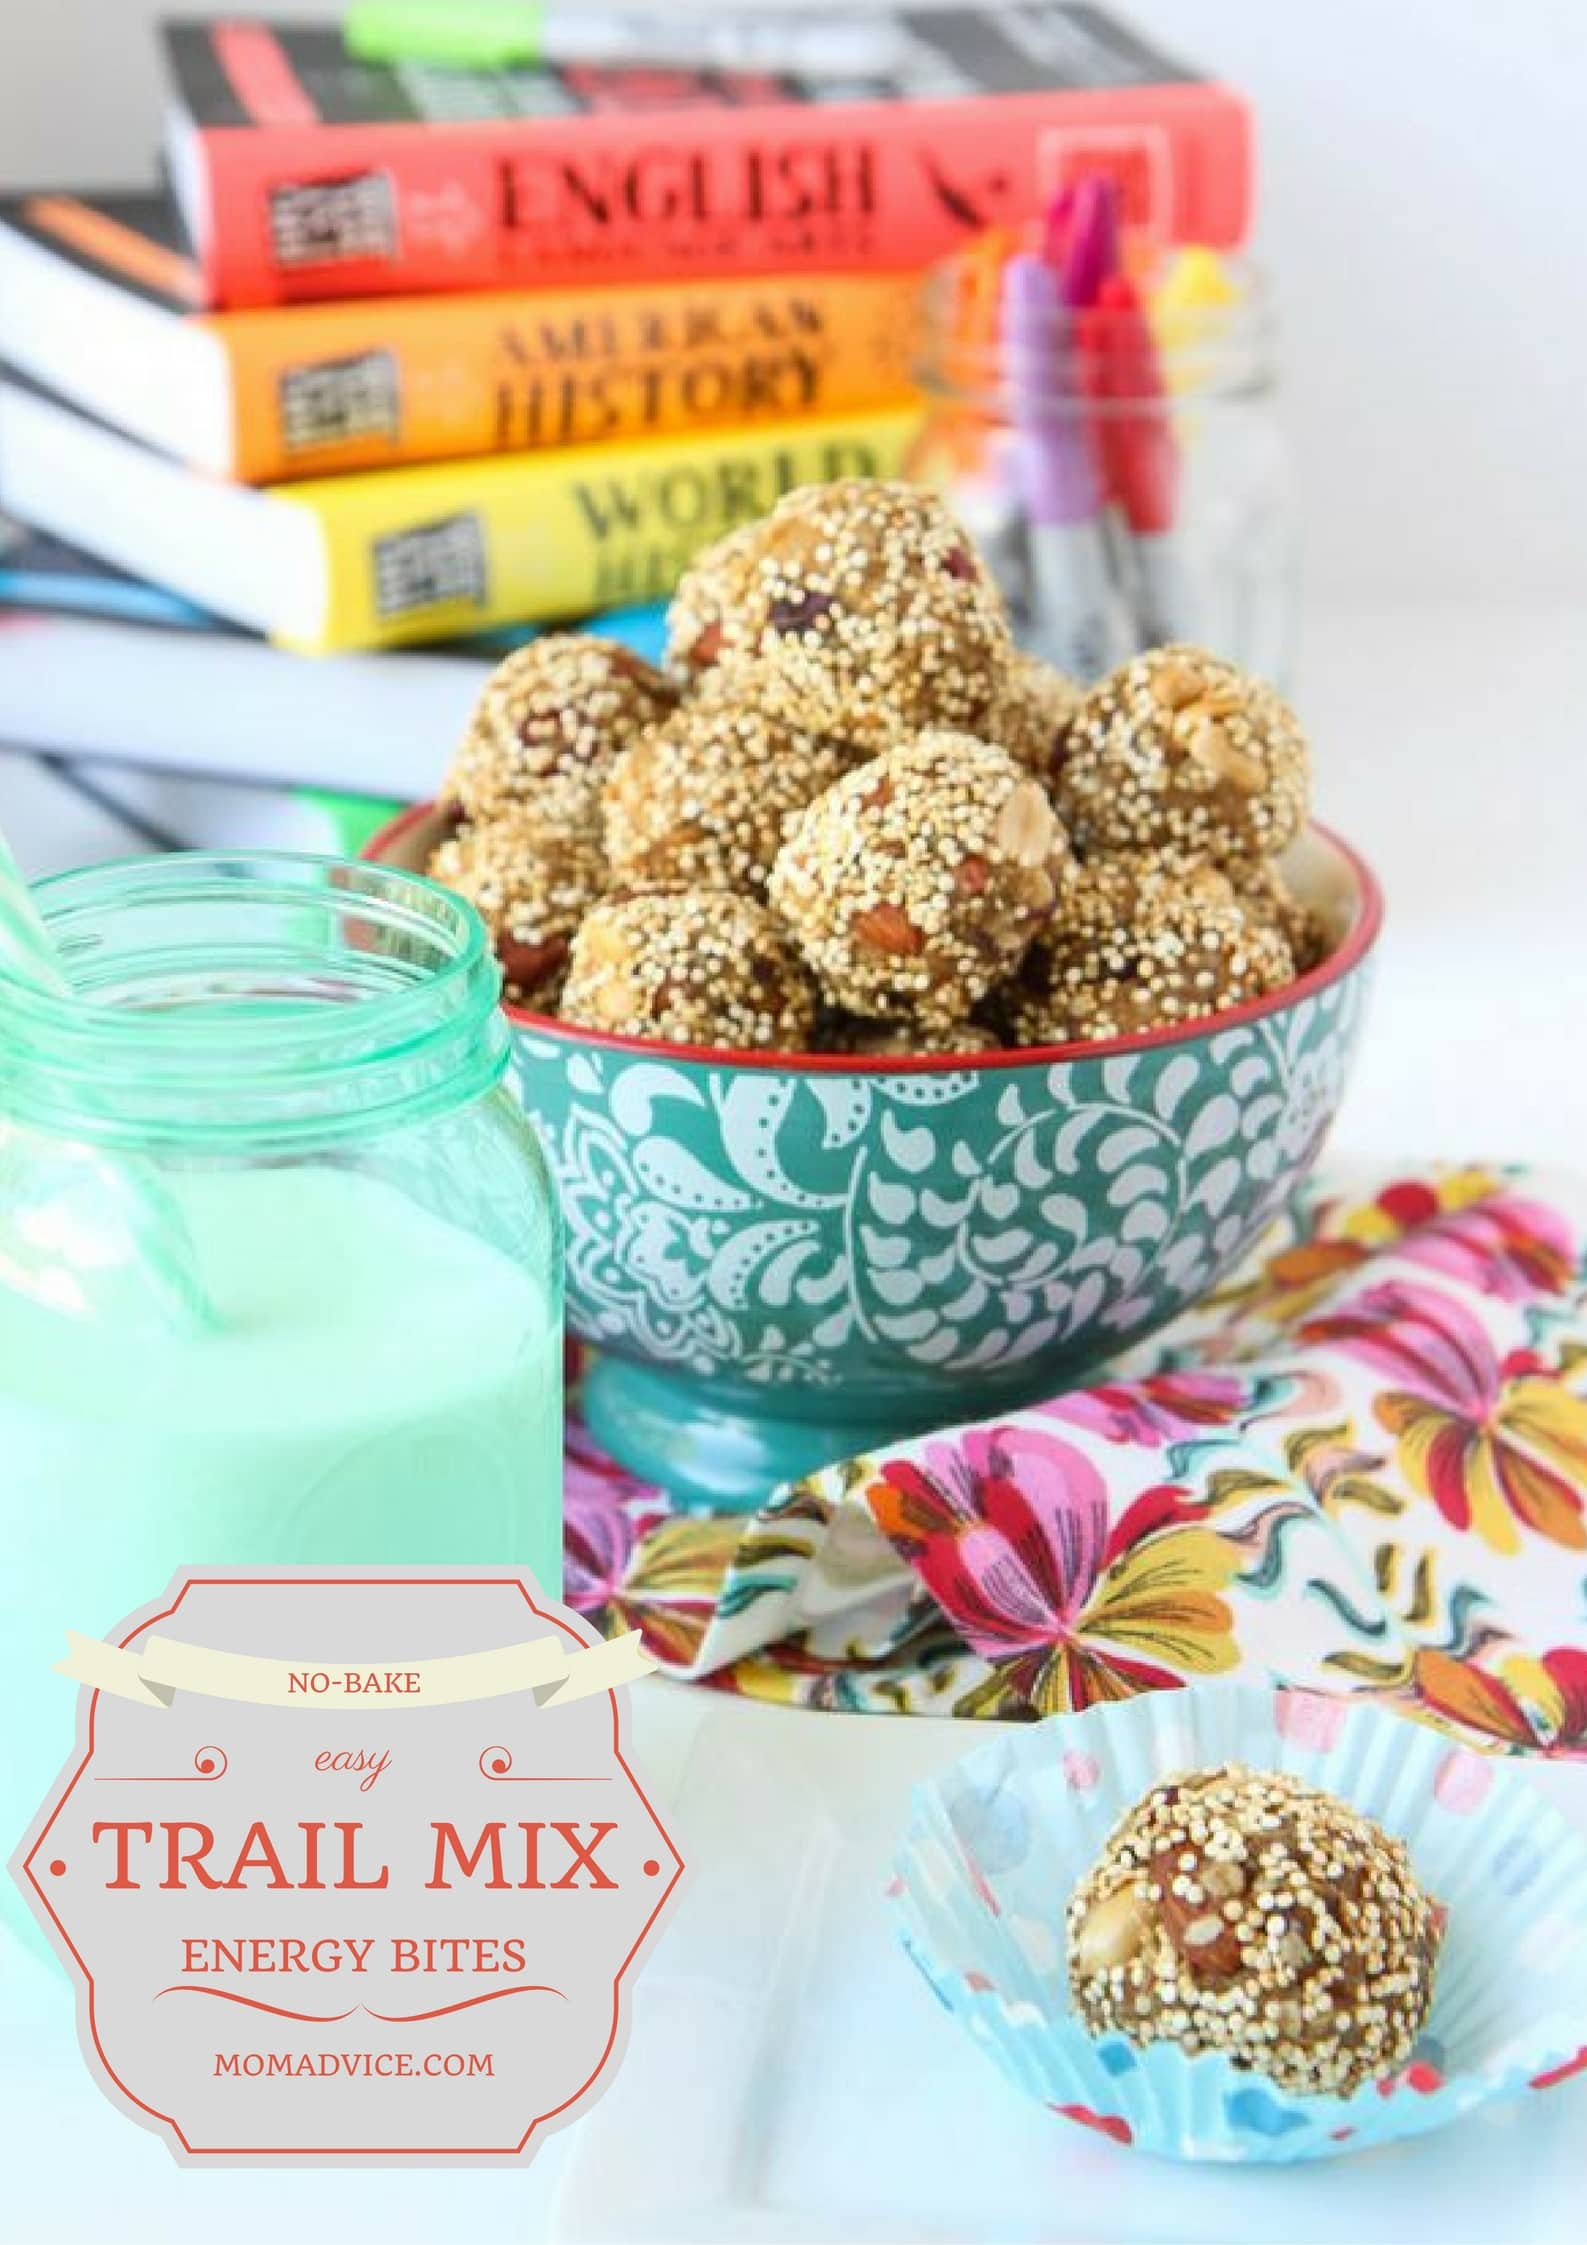 Trail Mix Energy Bites from MomAdvice.com